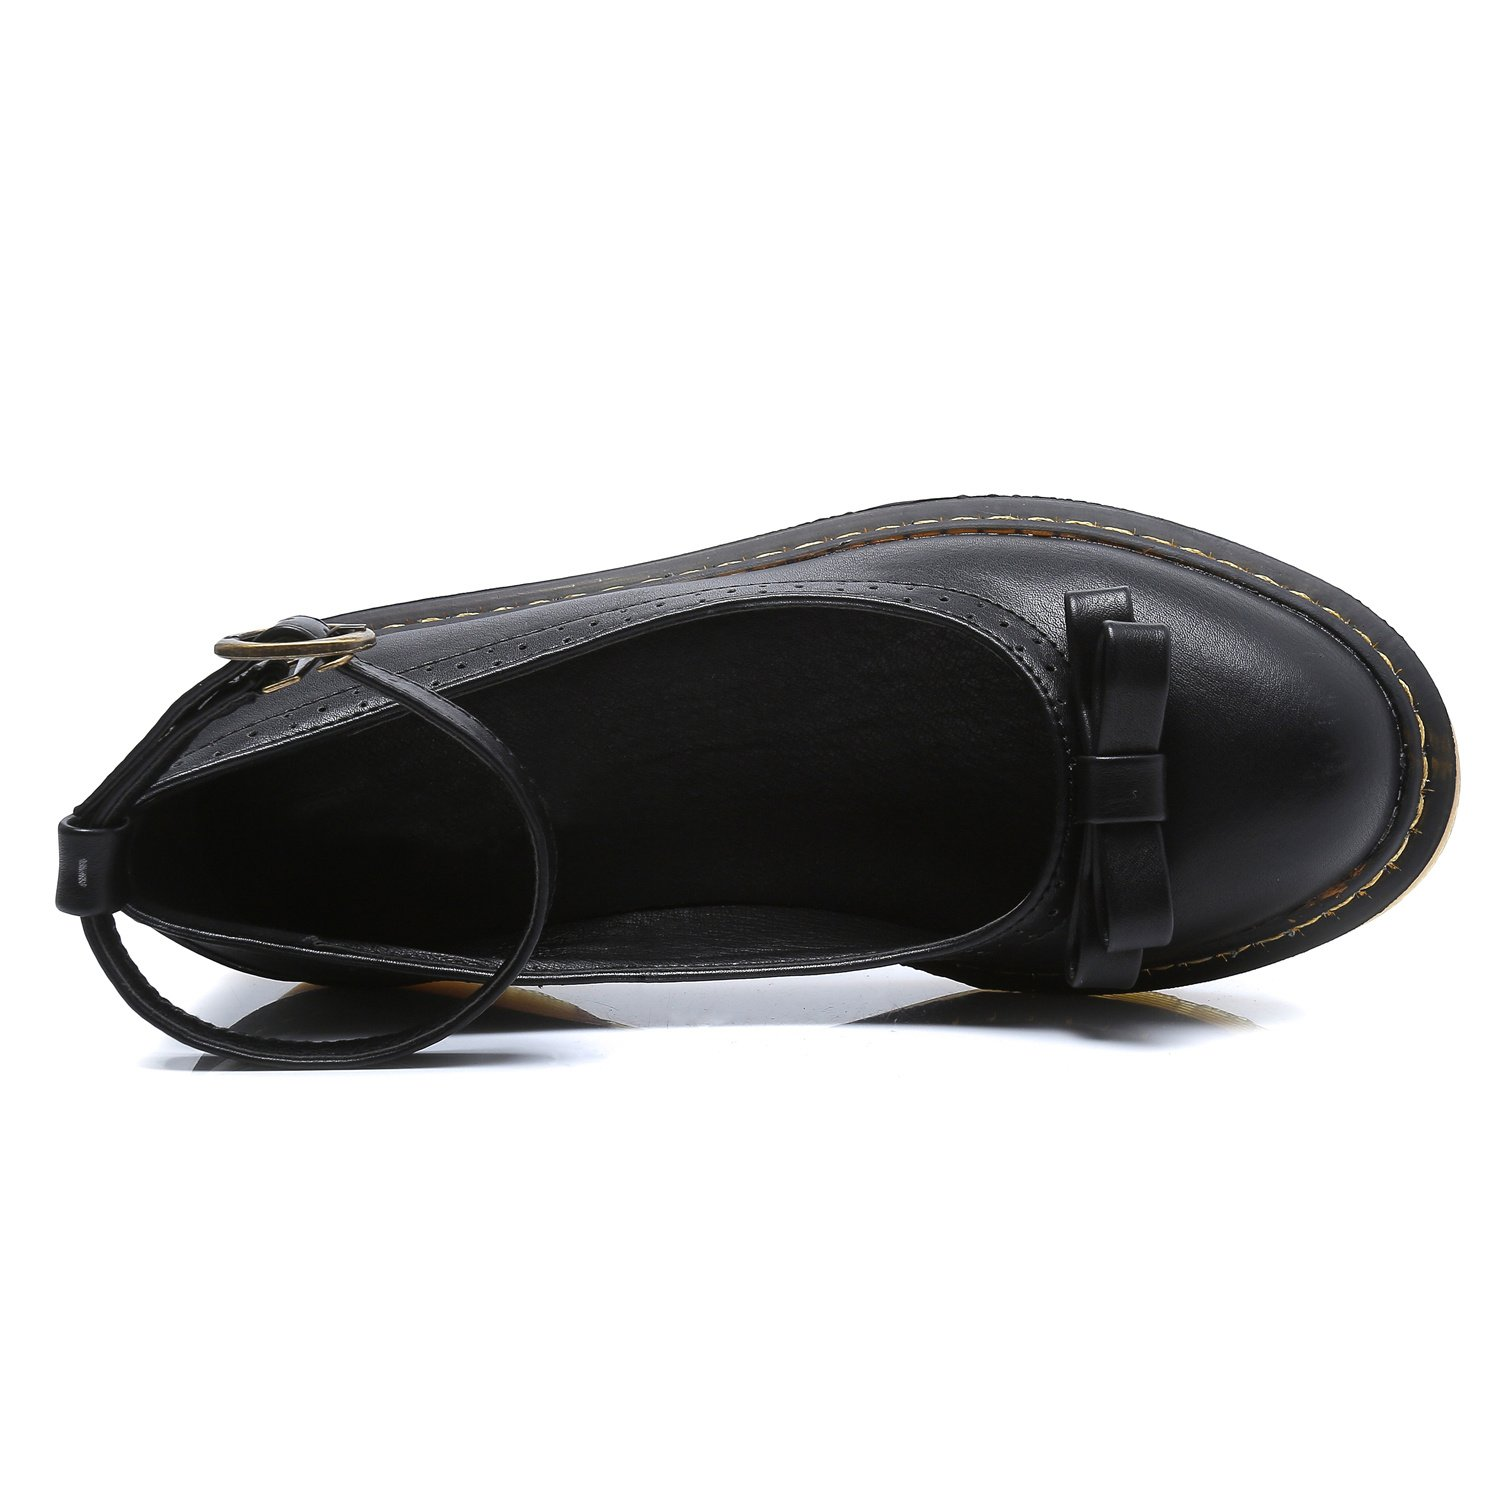 Smilun Lady¡¯s Boat Deck Shoes Dress Formal Driving Shoes Leather for Lady Round Toe Black Size 8 B(M) US by Smilun (Image #3)